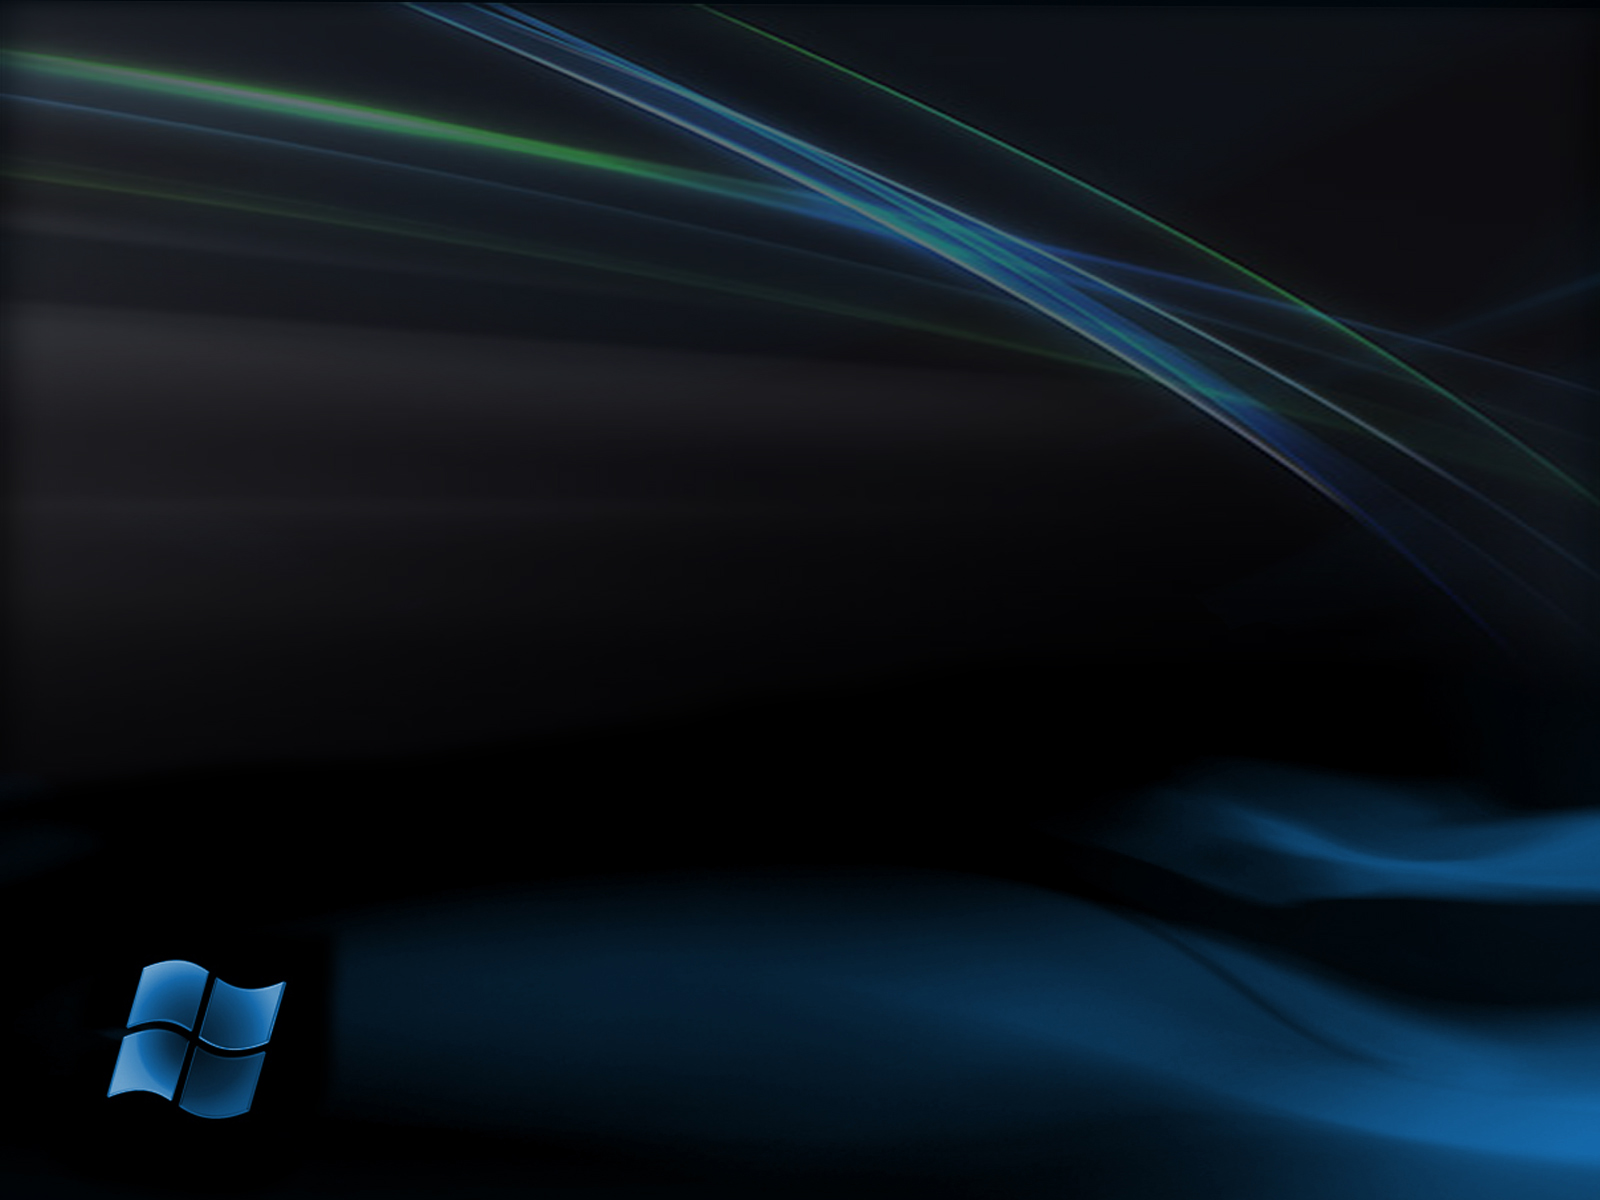 Windows 7 Desktop Themes 3d